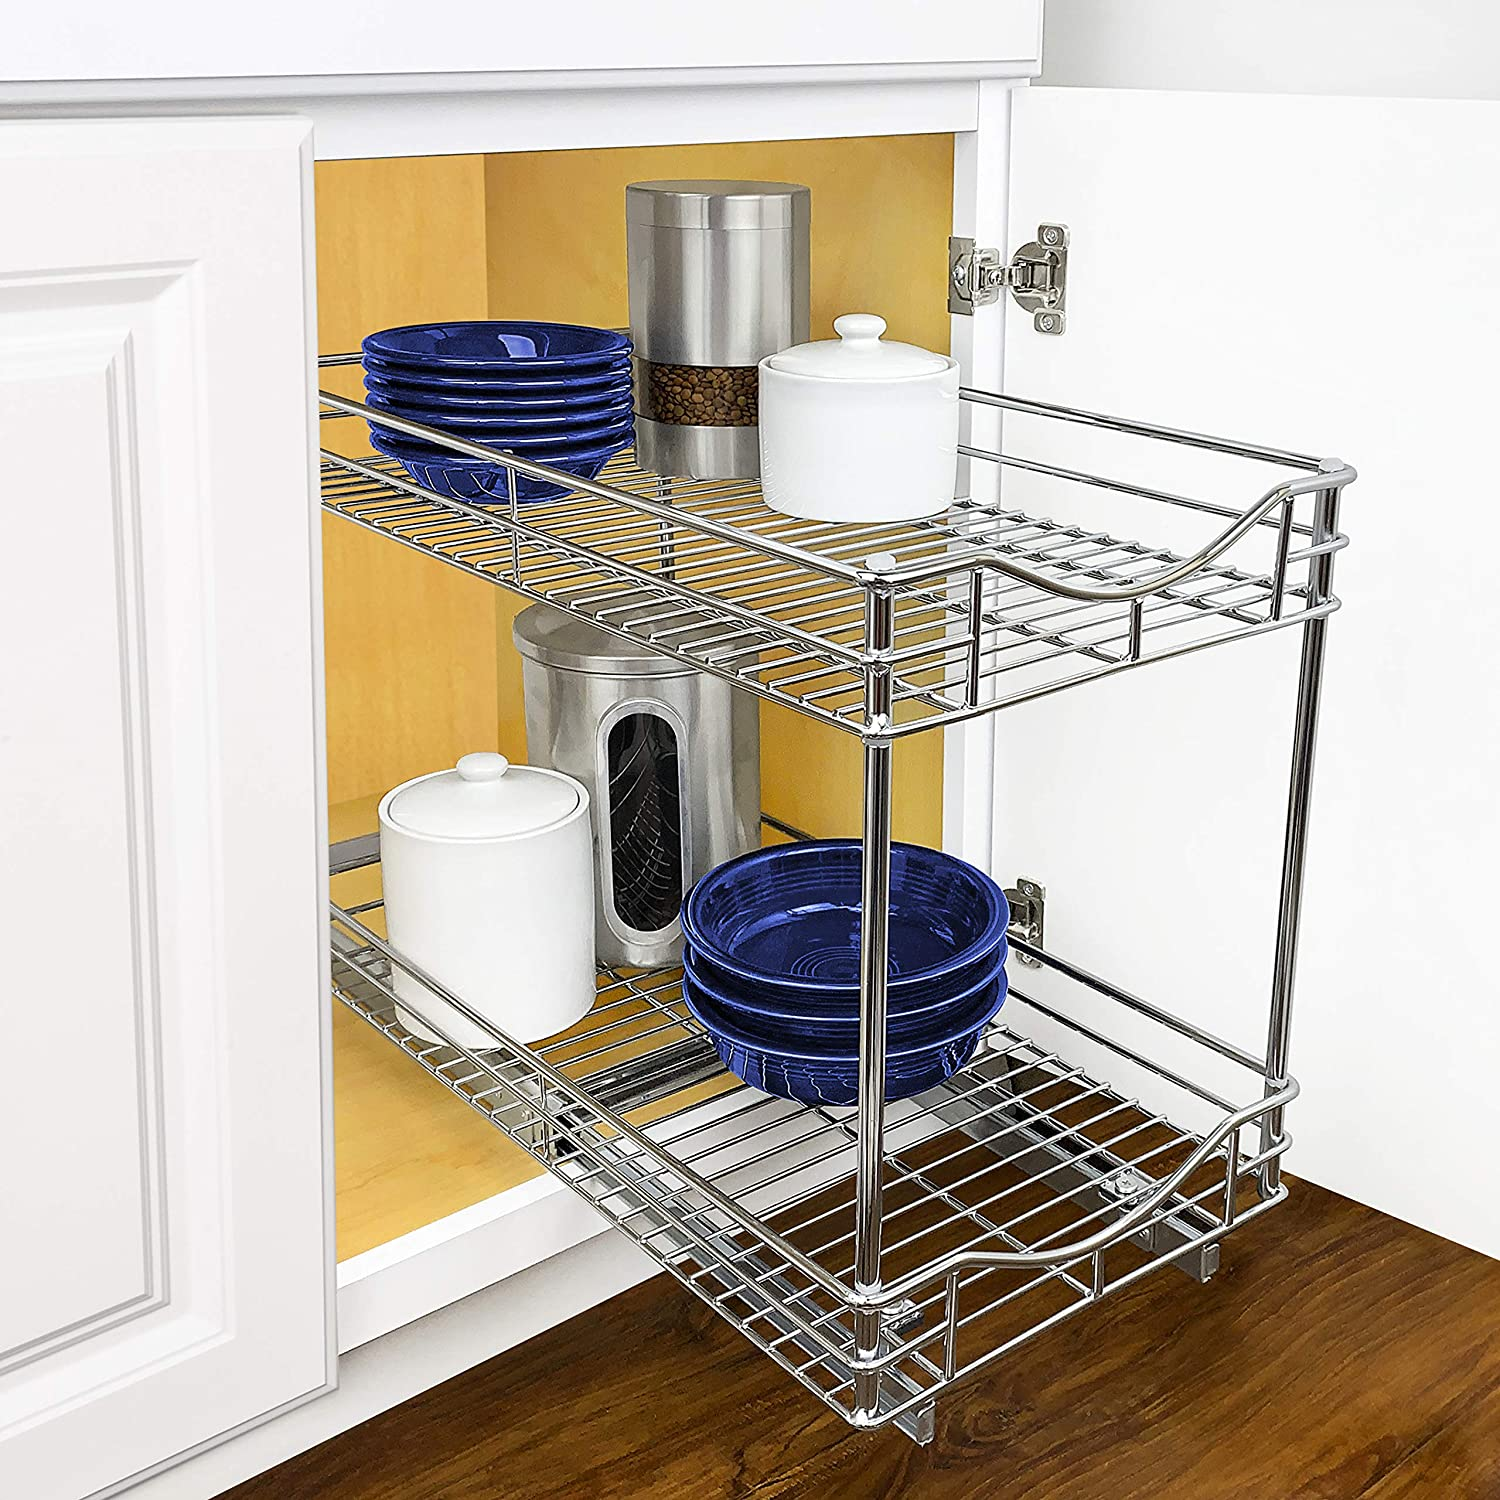 how to organize pots and pans, pots and pans storage ideas, pots and pans organization